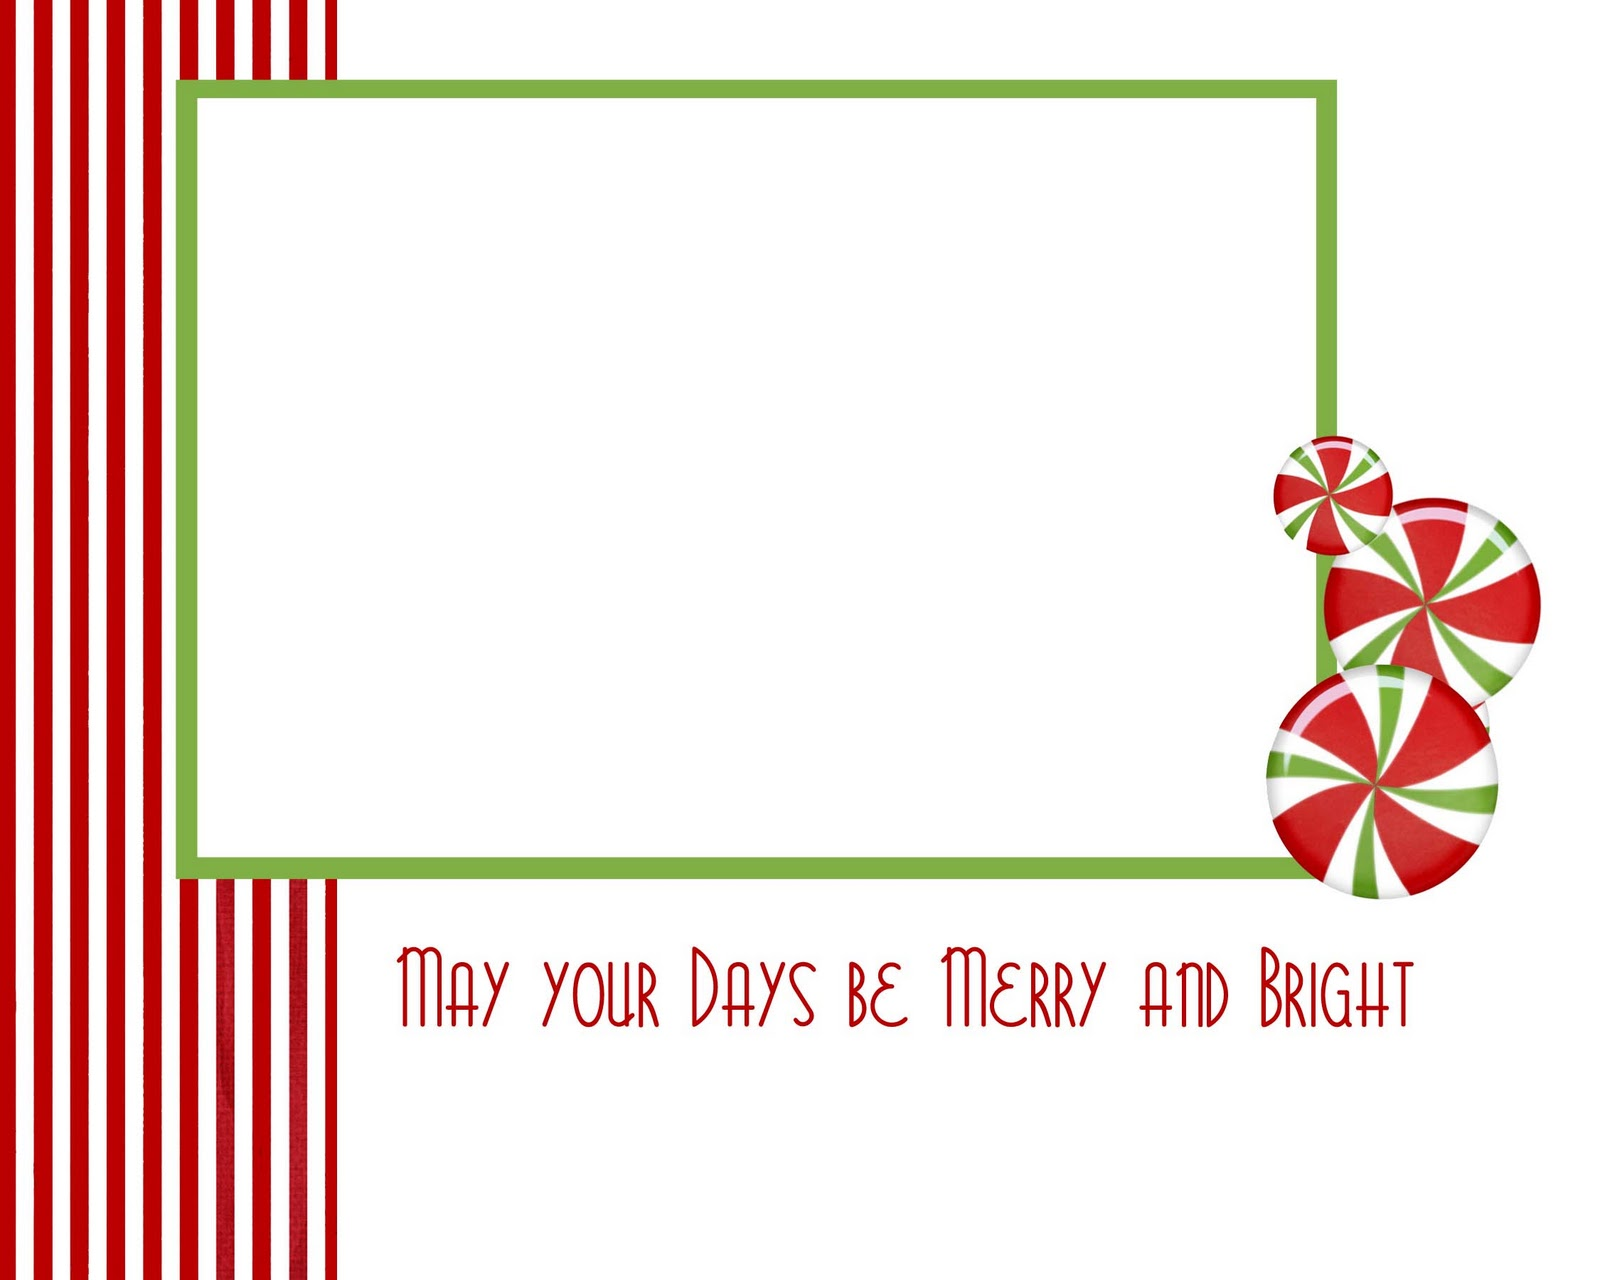 Christmas Card Display + 5 Printable Christmas Cards - Over The ...